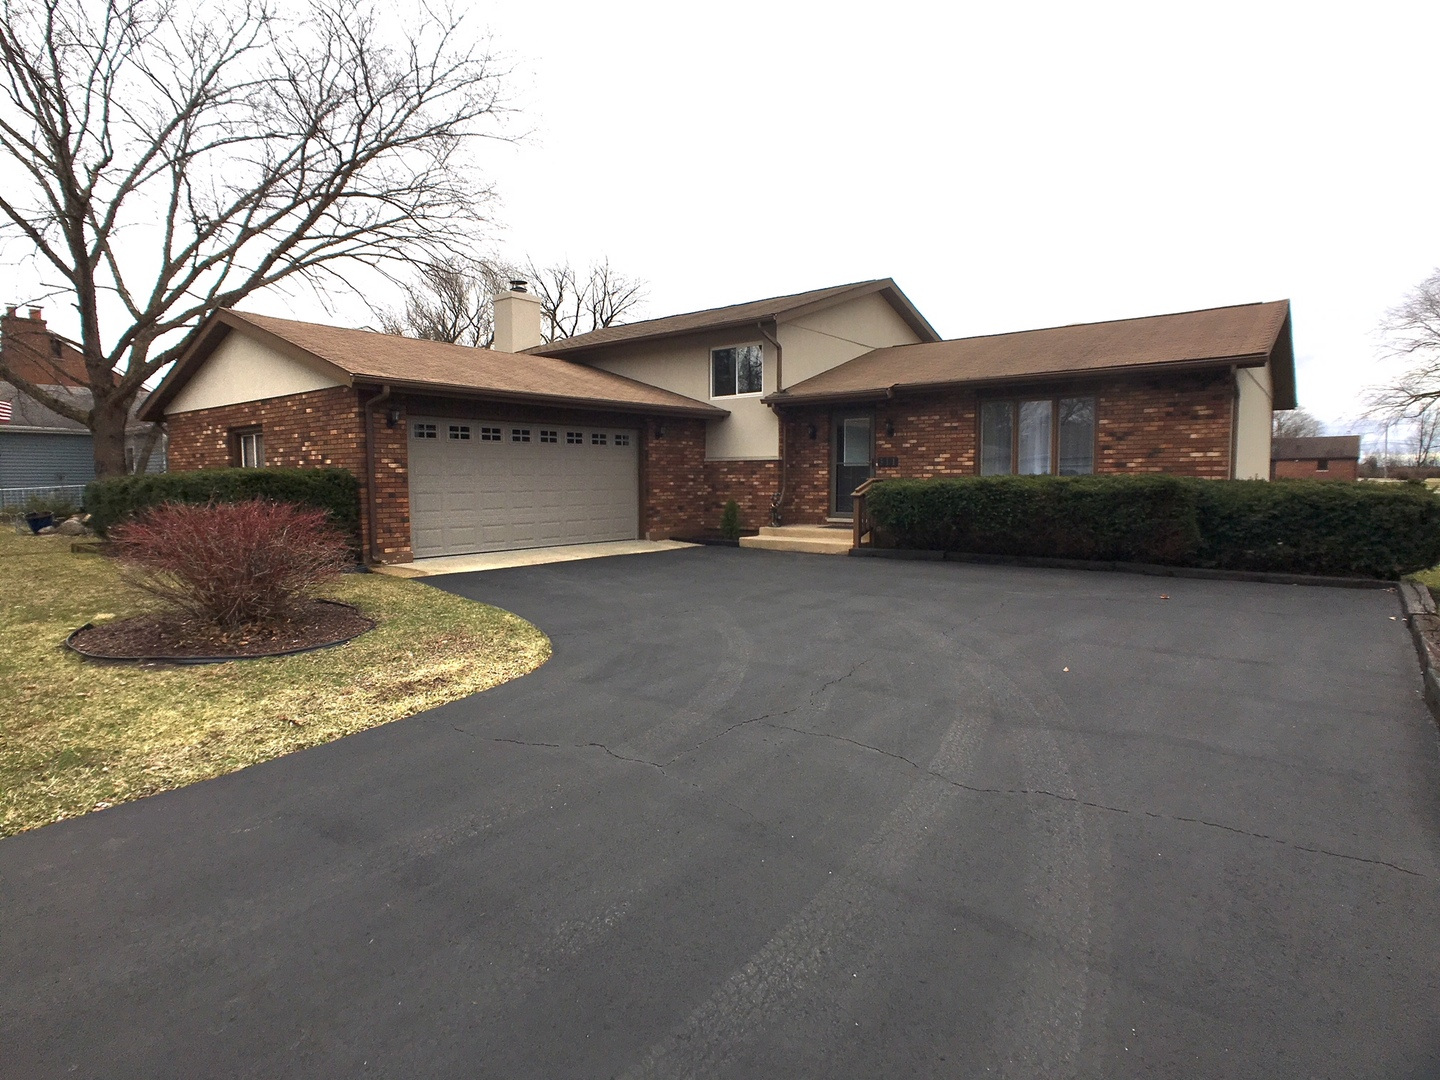 Photo for 311 Pearl Street, Cary, IL 60013 (MLS # 10673546)